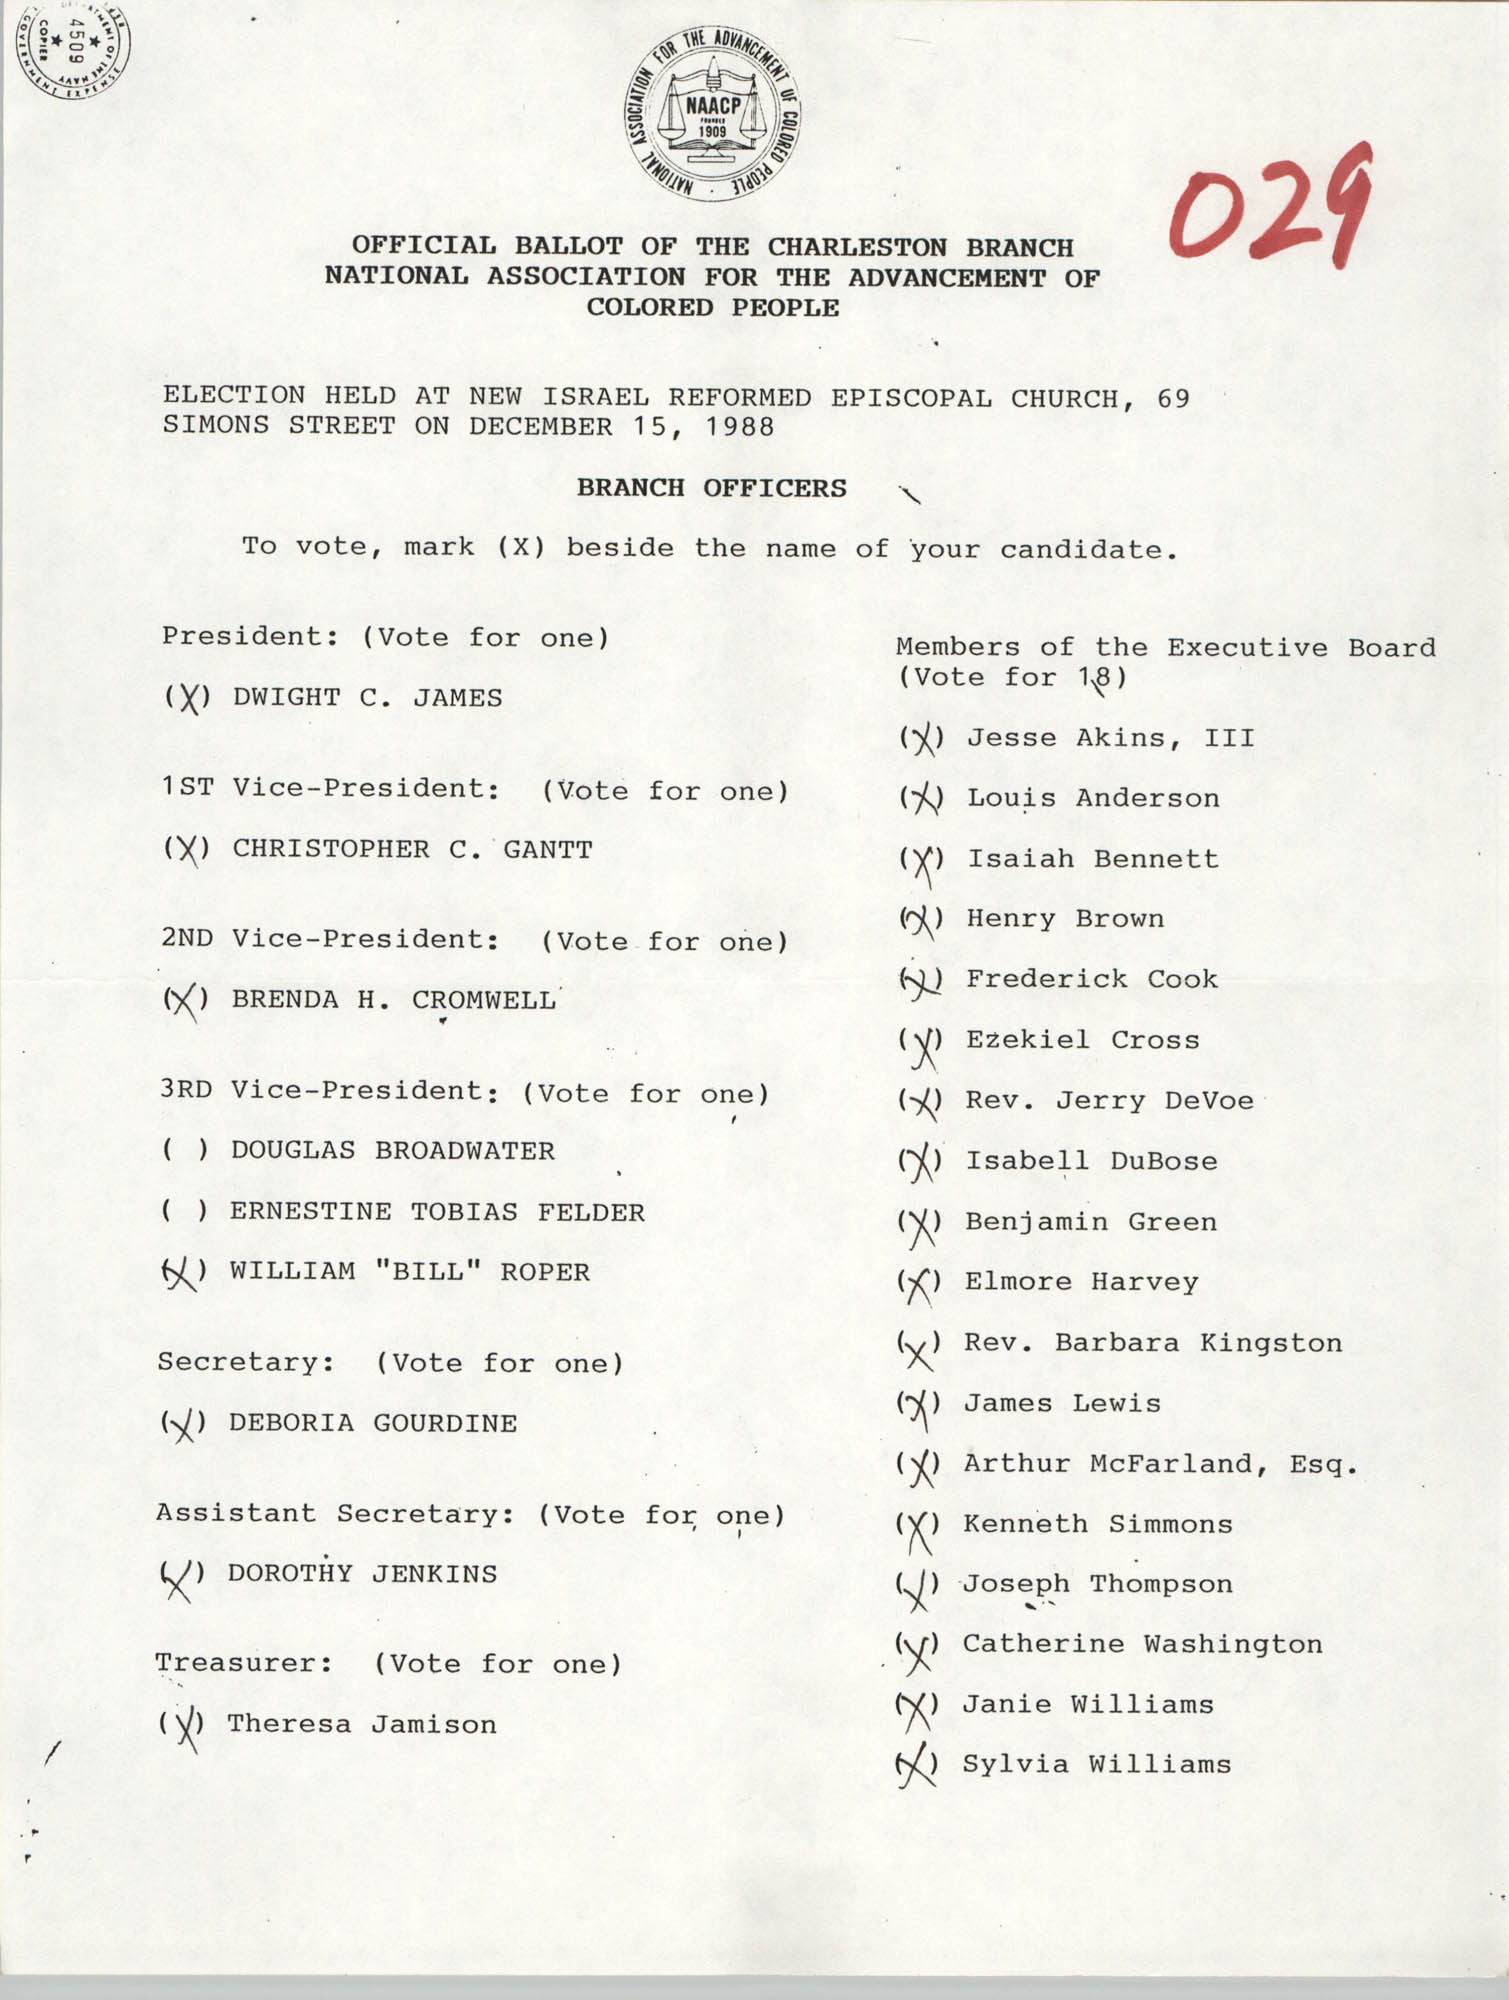 Official Ballot of the Charleston Branch of the NAACP, 029